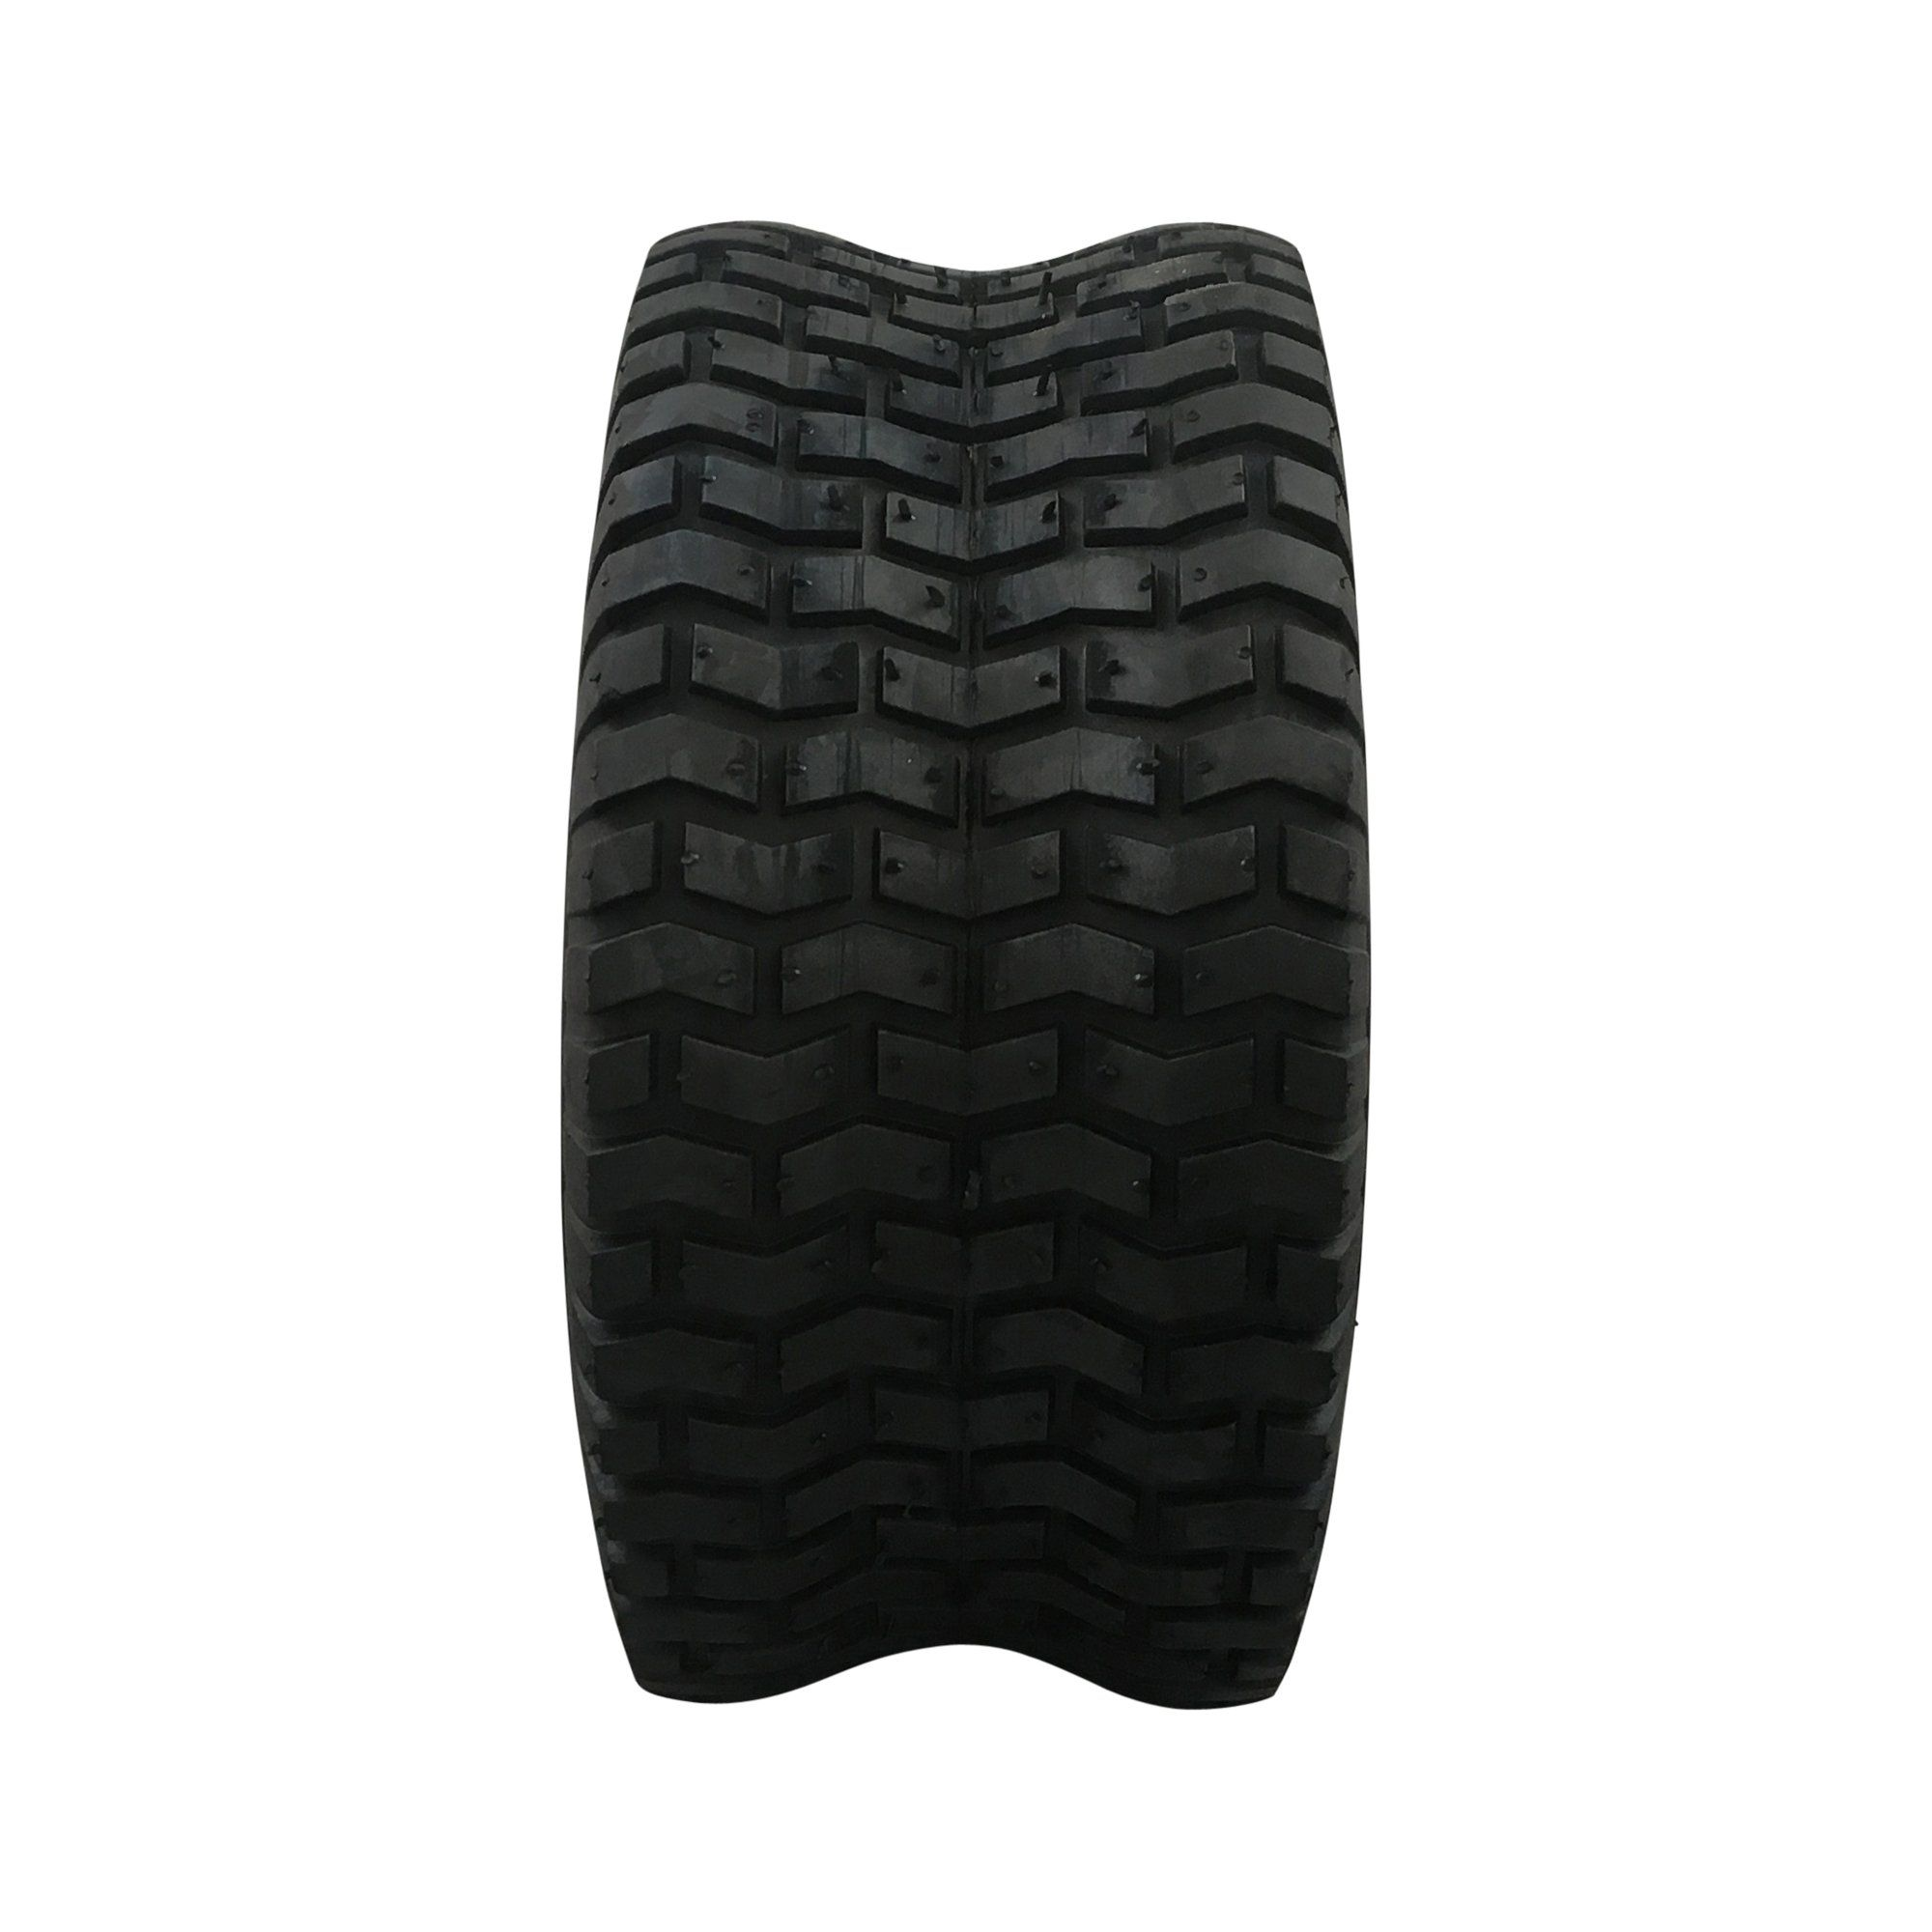 Marastar 21412 15x6 006 Tire Only With Tube Turf Saver Tread Find Out More About The Great Product At The Image Link It Is An Landscaping Tools Savers Turf